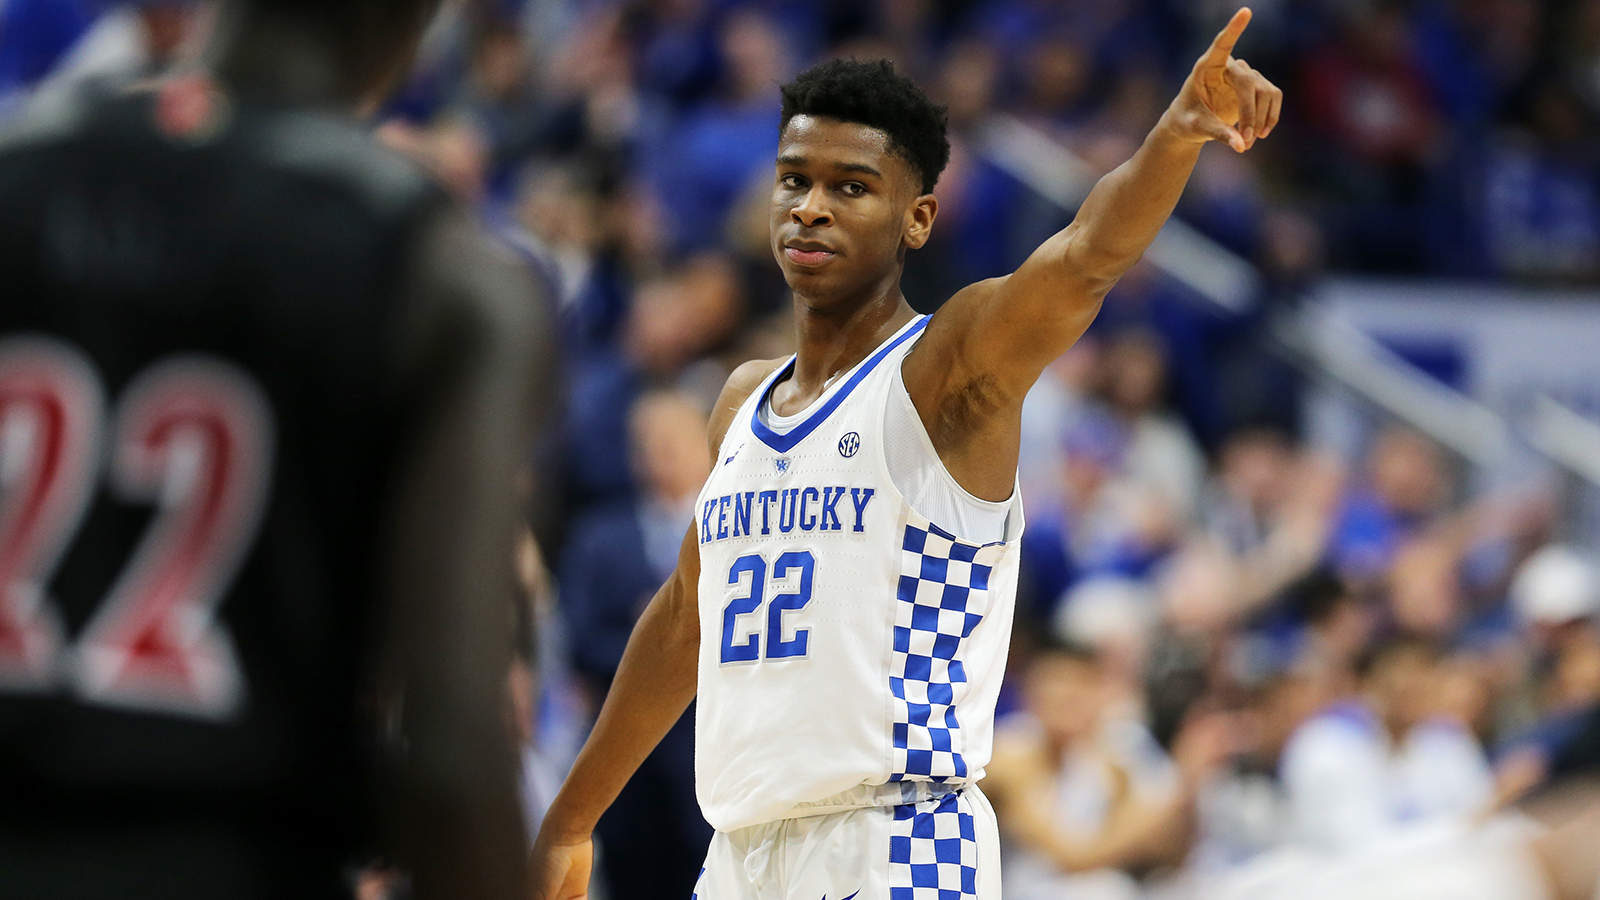 Uk Basketball: What Channel Is The Uk Vs Ul Basketball Game On